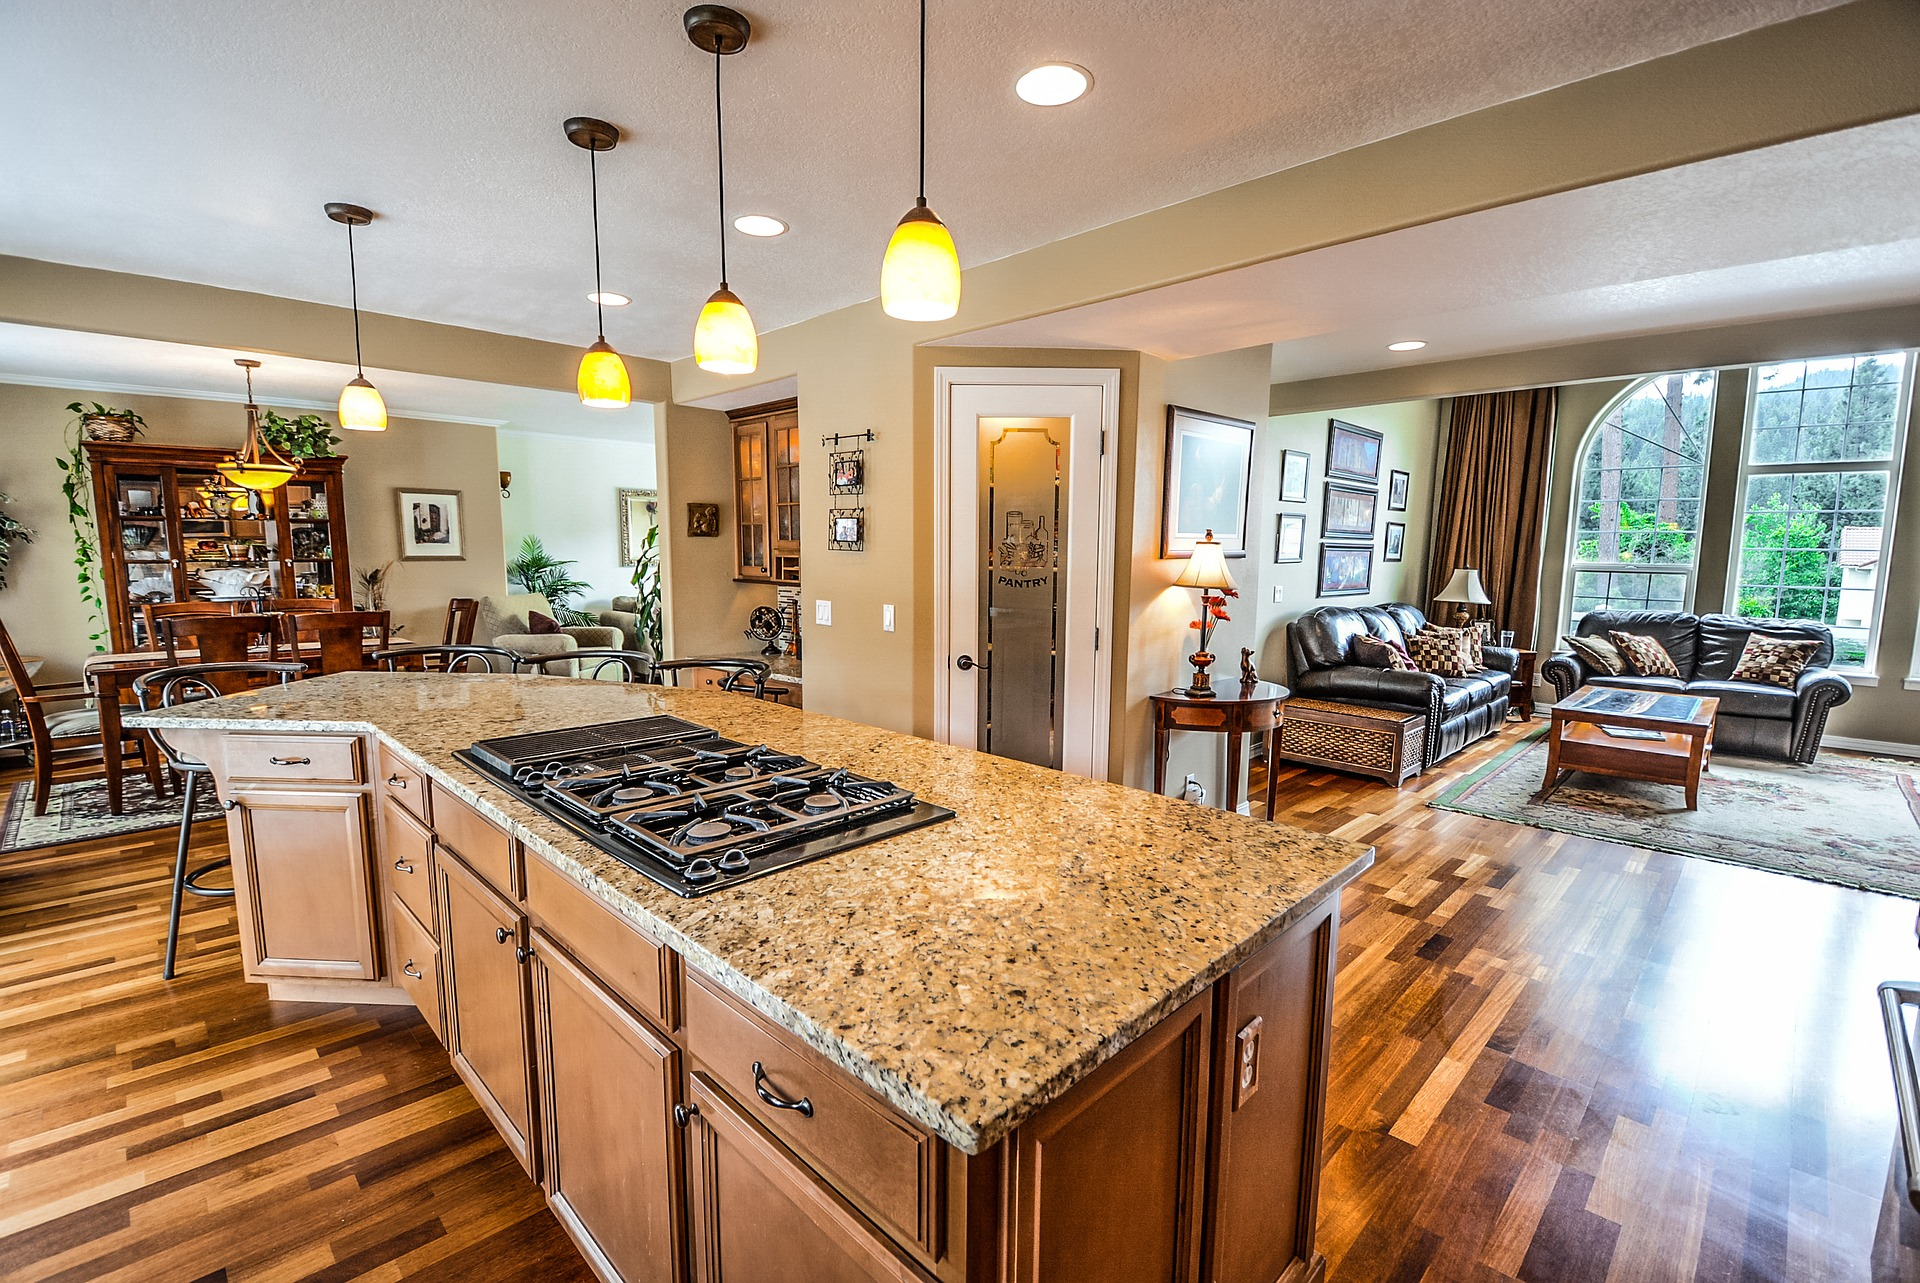 Get a mortgage loan to remodel your kitchen